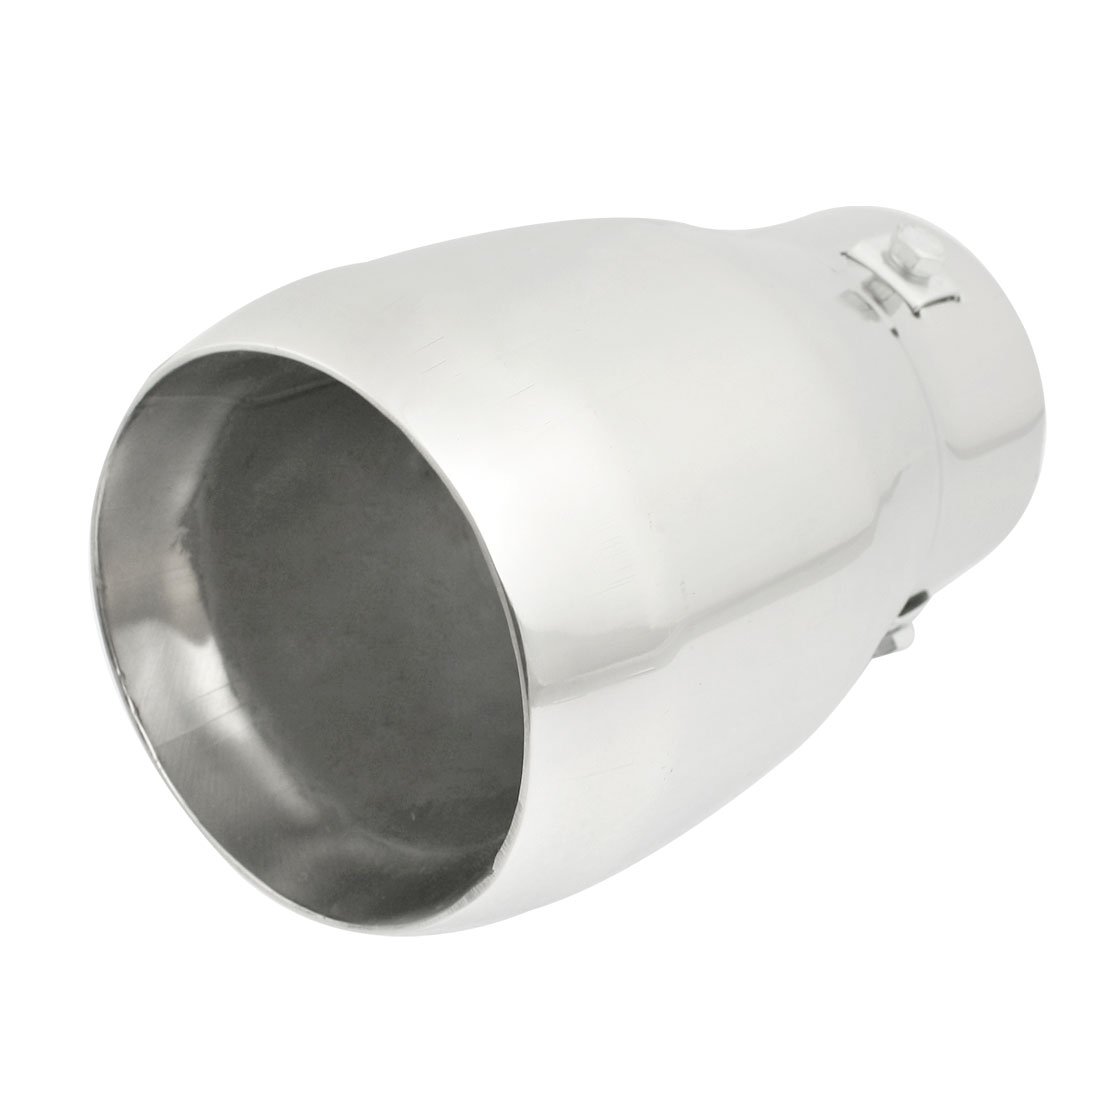 Stainless Steel 74mm Inlet Round Exhaust Muffler Tip Replacement